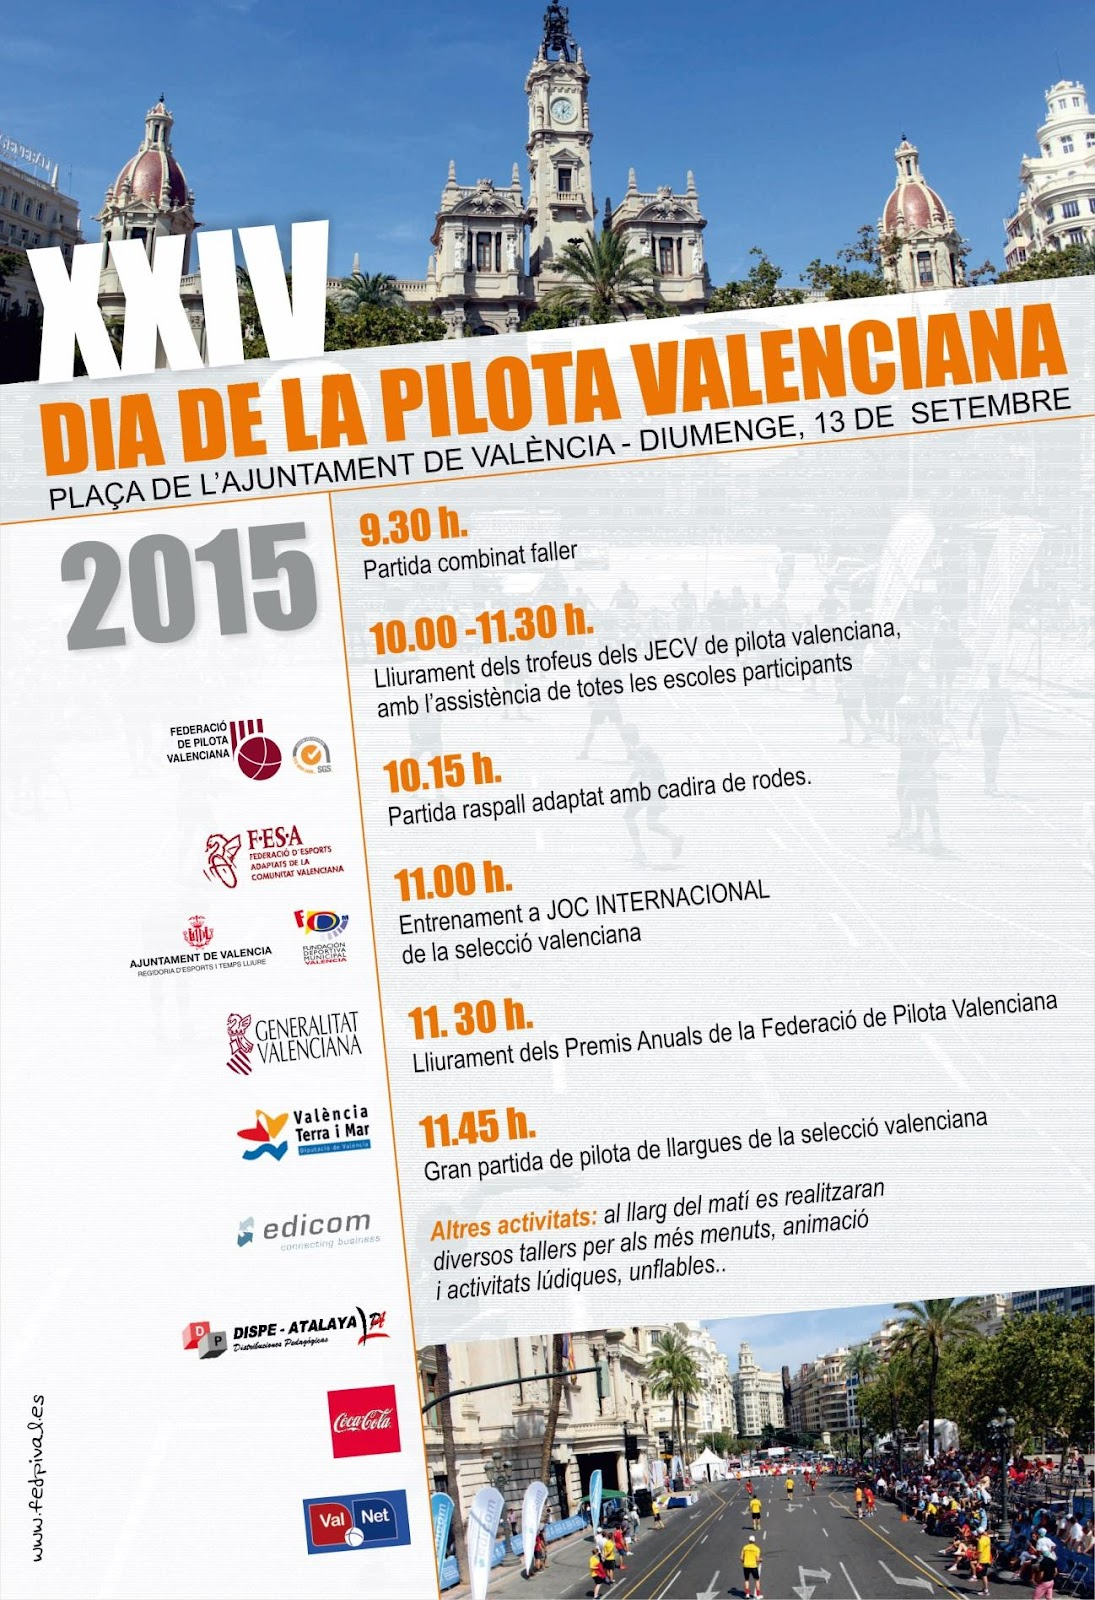 C:\Users\Gonzalo\AppData\Local\Temp\CARTELL DIA DE LA PILOTA 2015 (3).jpg